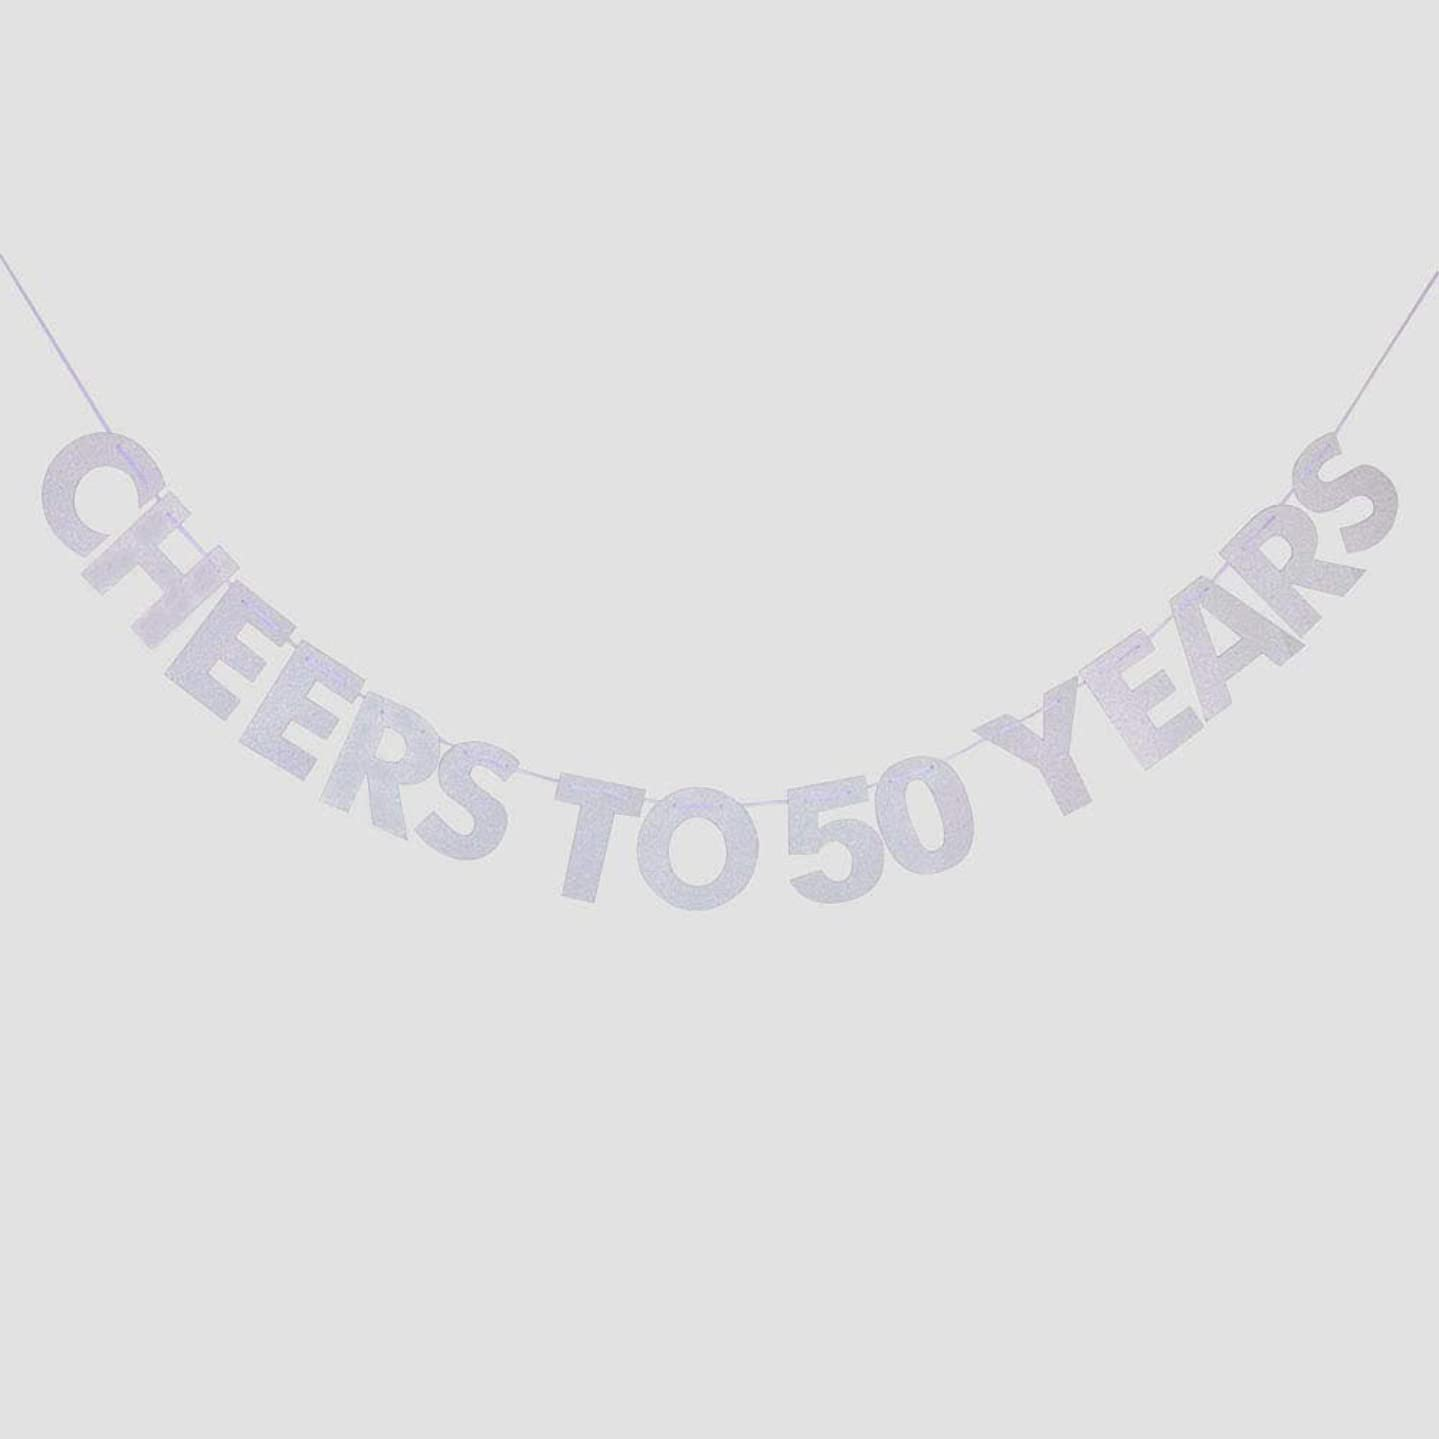 Cheers to 50 Years Banner, 50th Birthday, Wedding Anniversary, Retirement Party Bunting Sign Decorations Photo Props, Party Favors, Supplies, Gifts, Themes and Ideas